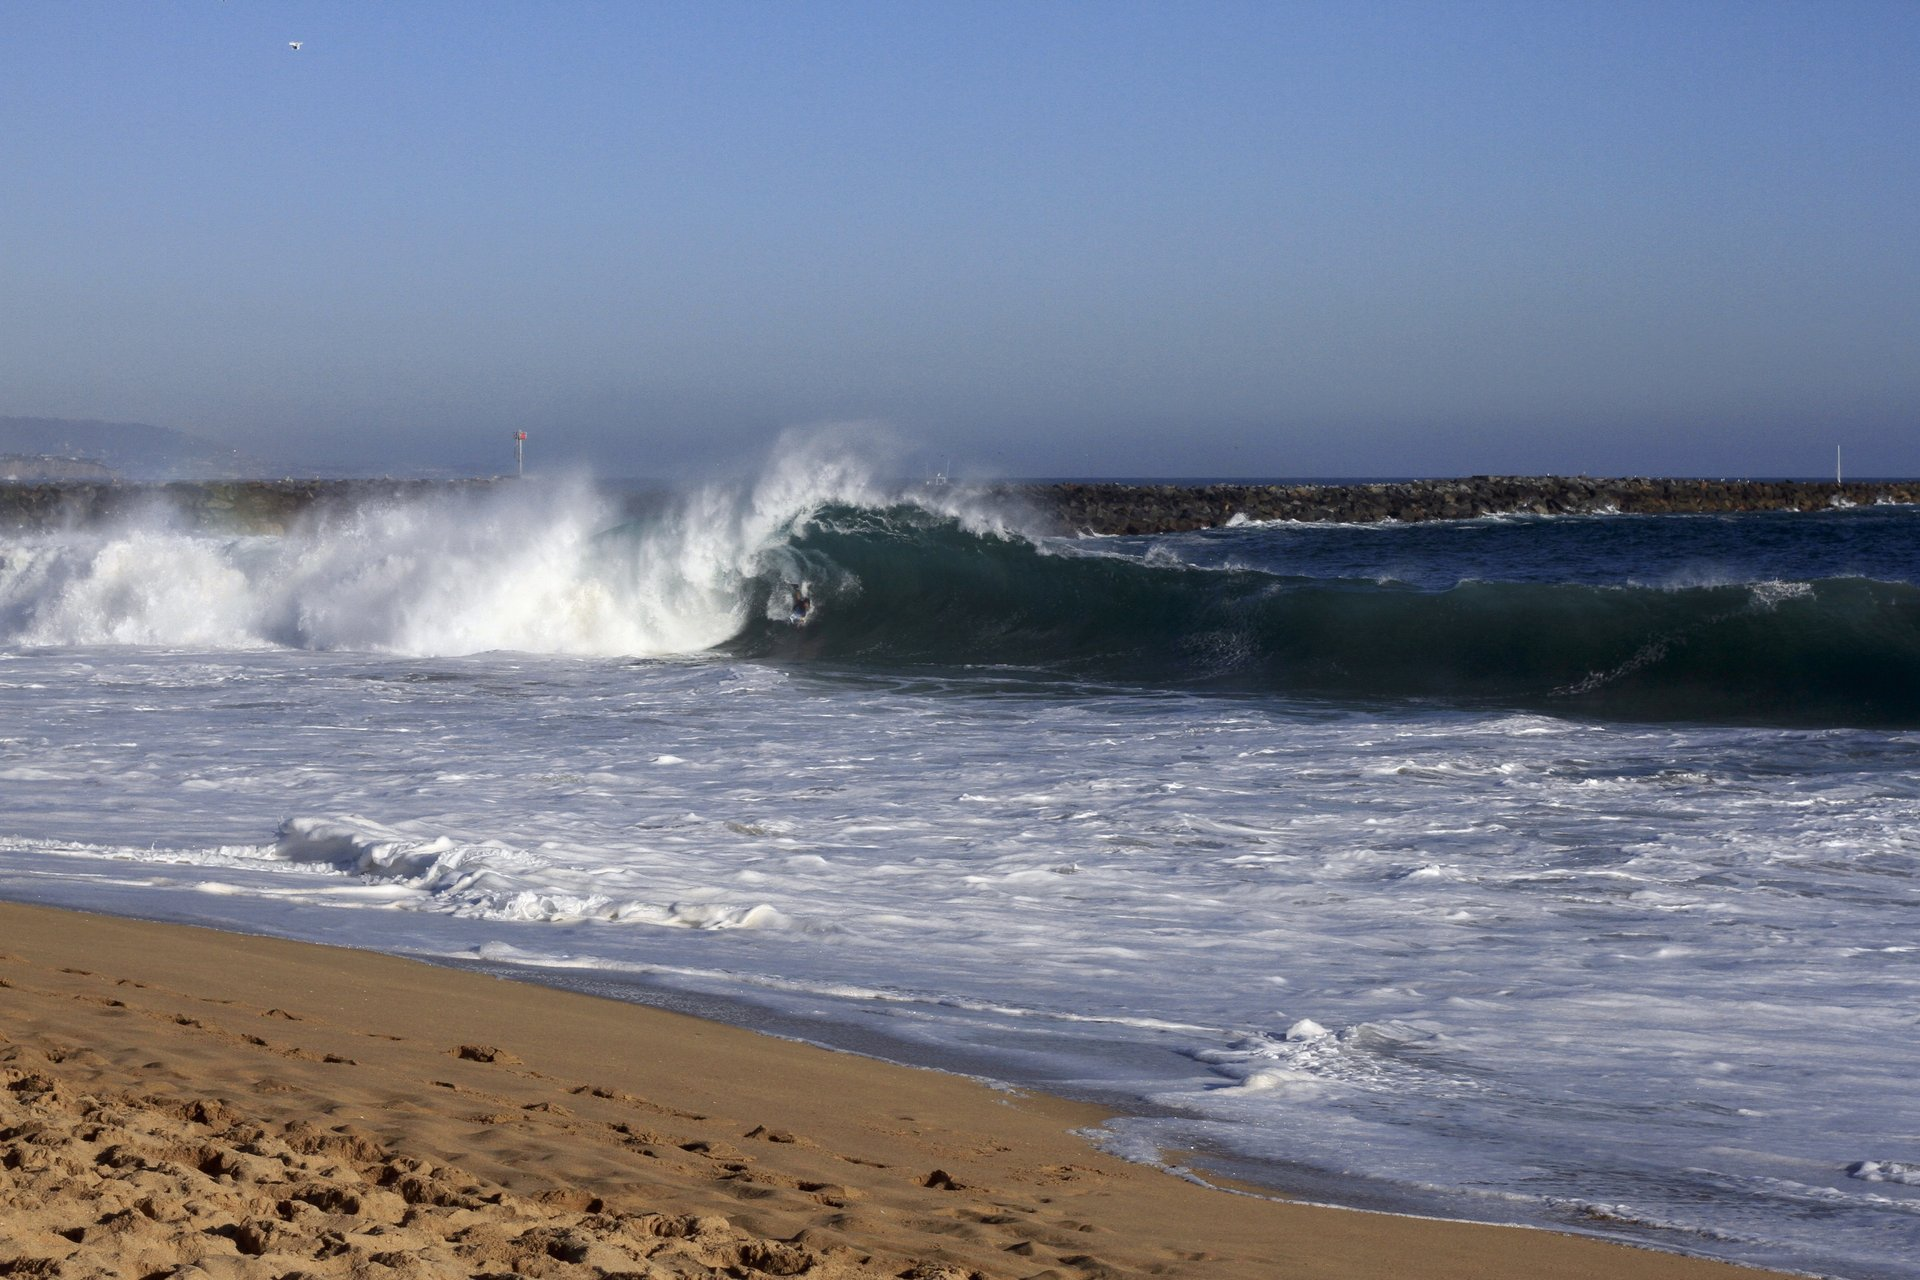 Mike Fink's photo of The Wedge